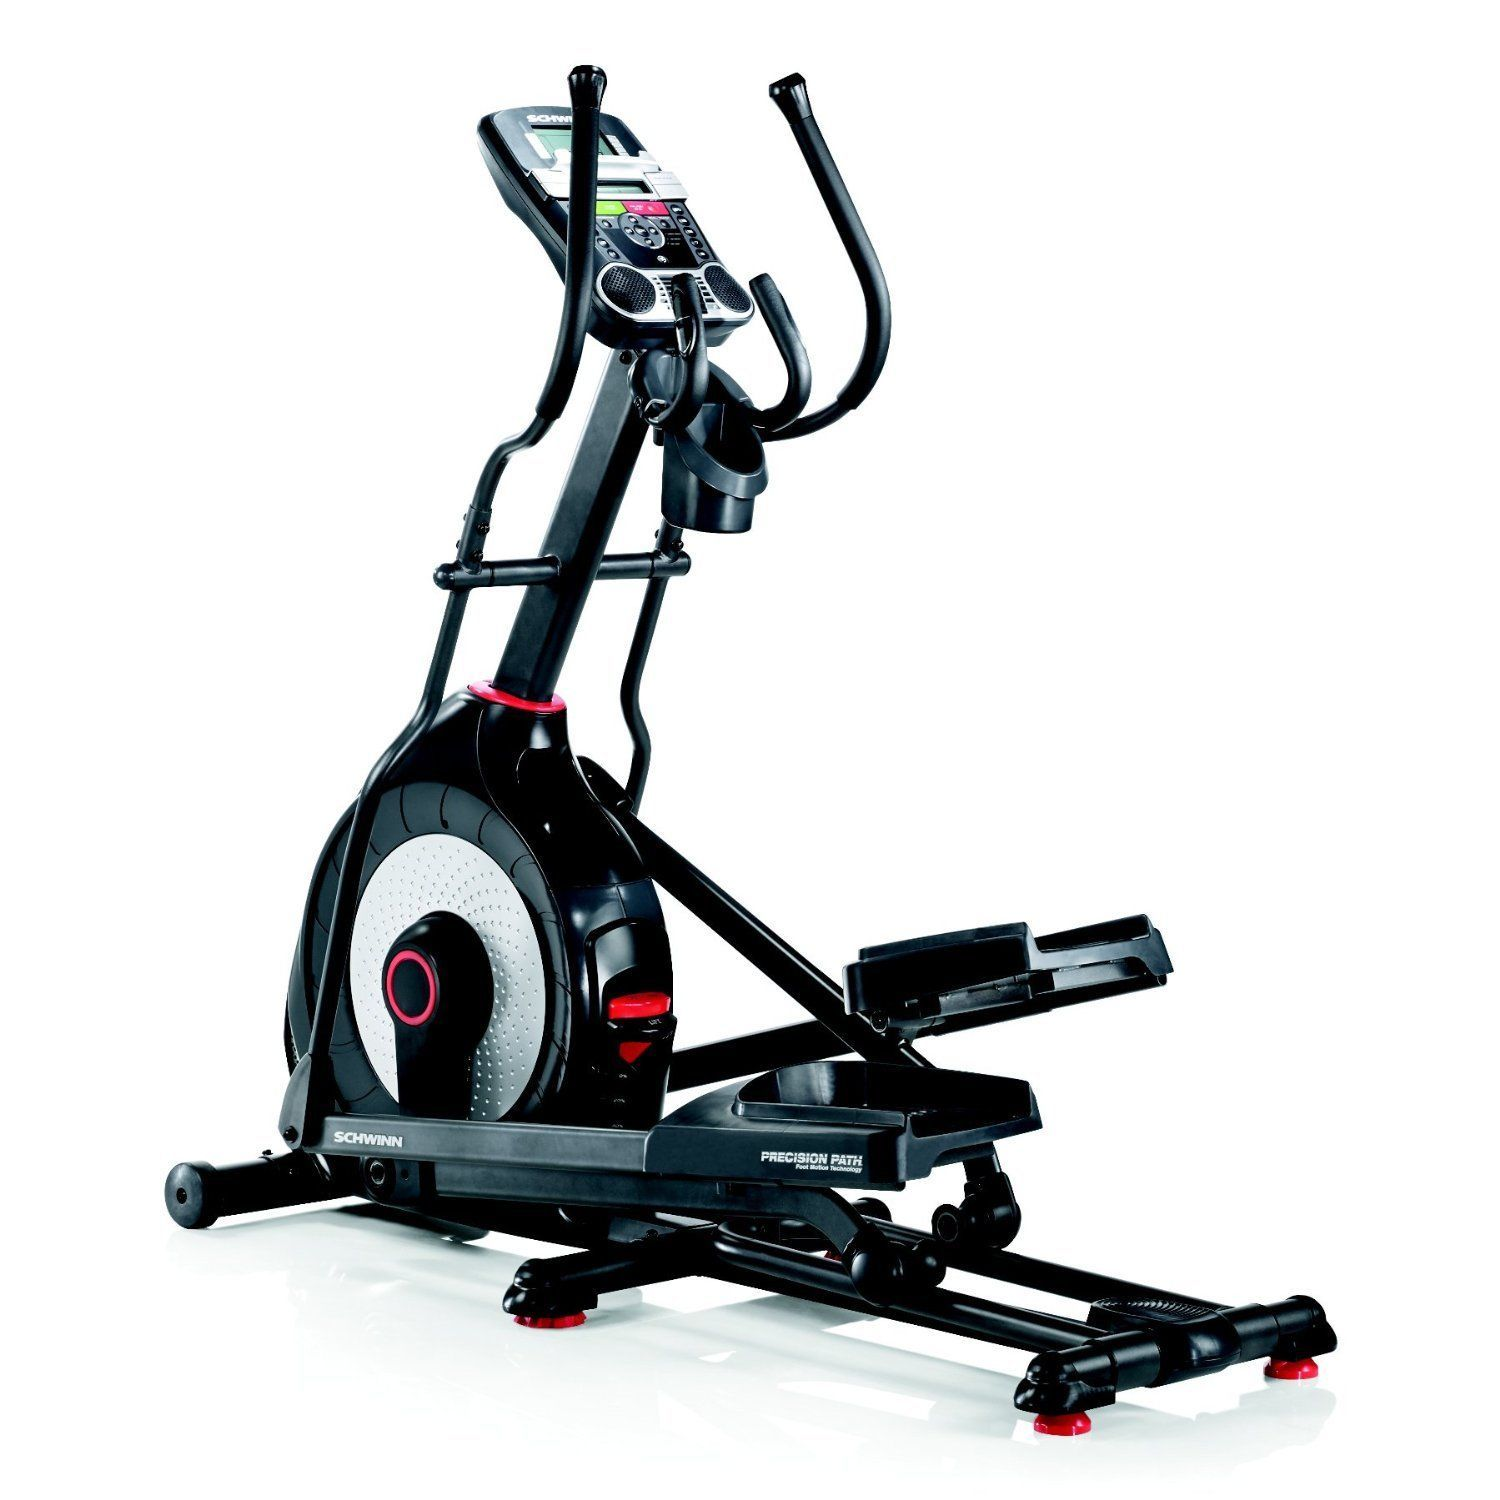 Details About Schwinn 430 Elliptical Machine My2016 Full Body